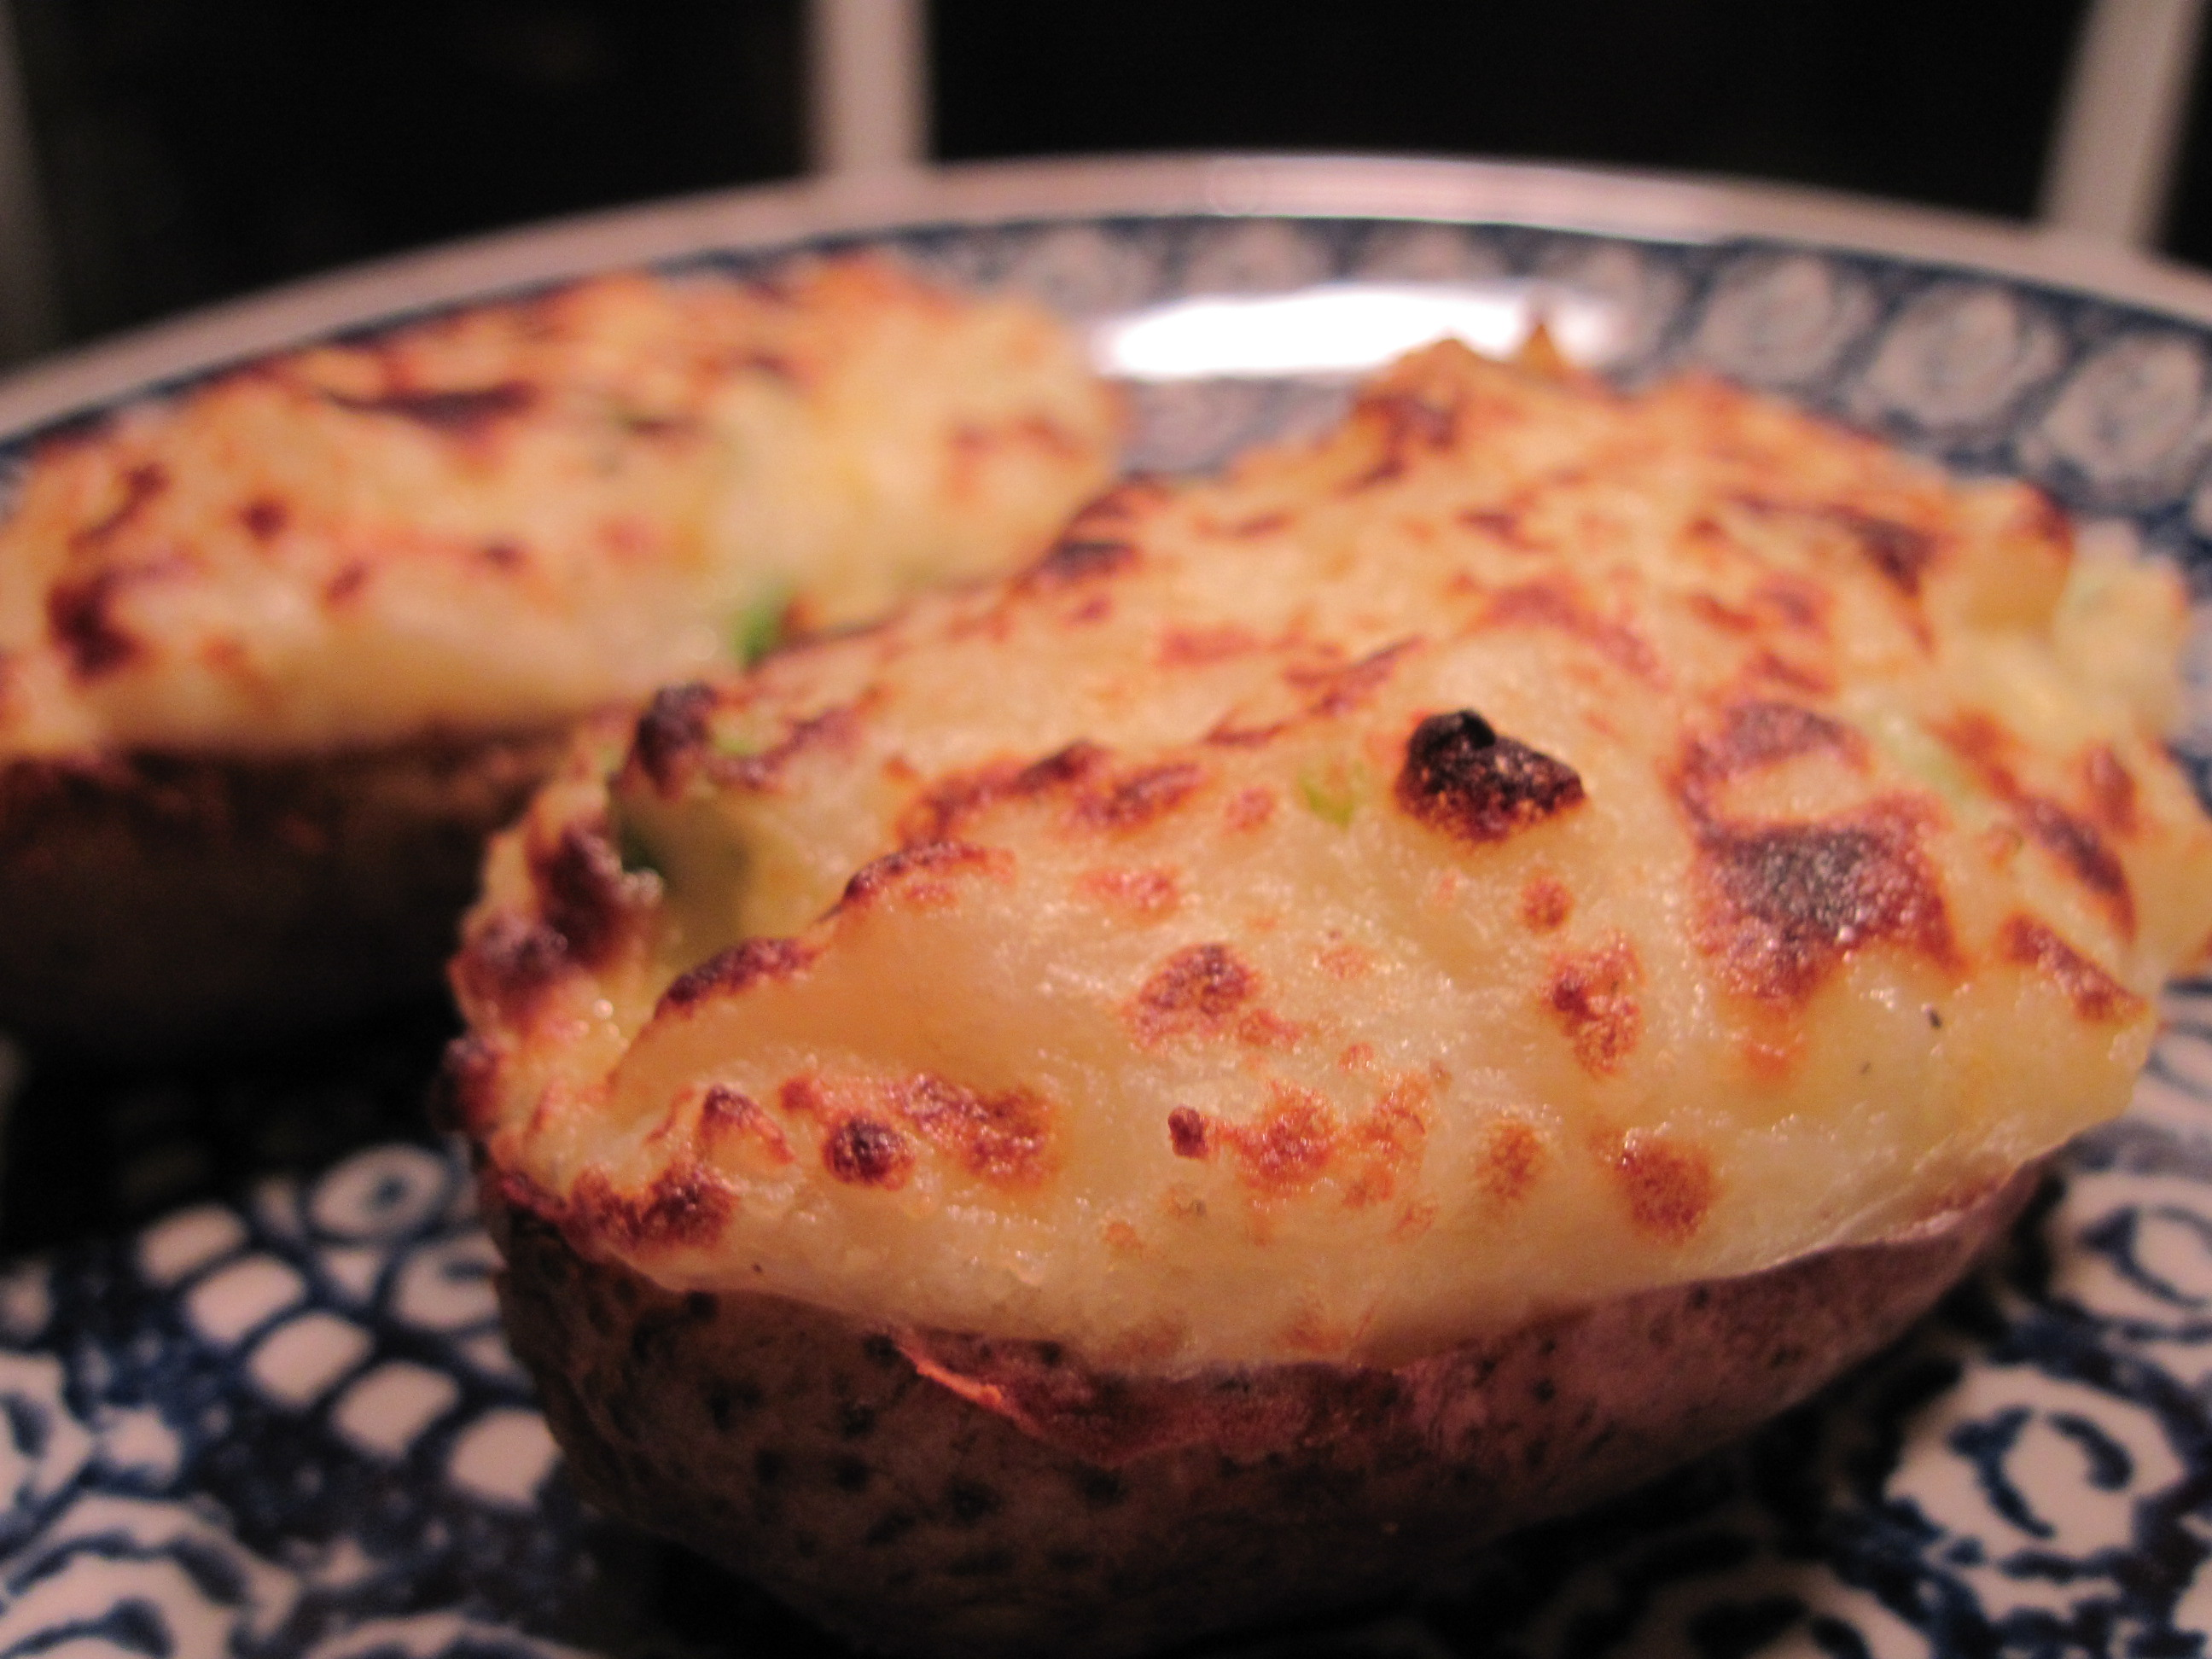 Twice baked potatoes recipe make ahead eat aplenty the for Different ways to cook russet potatoes